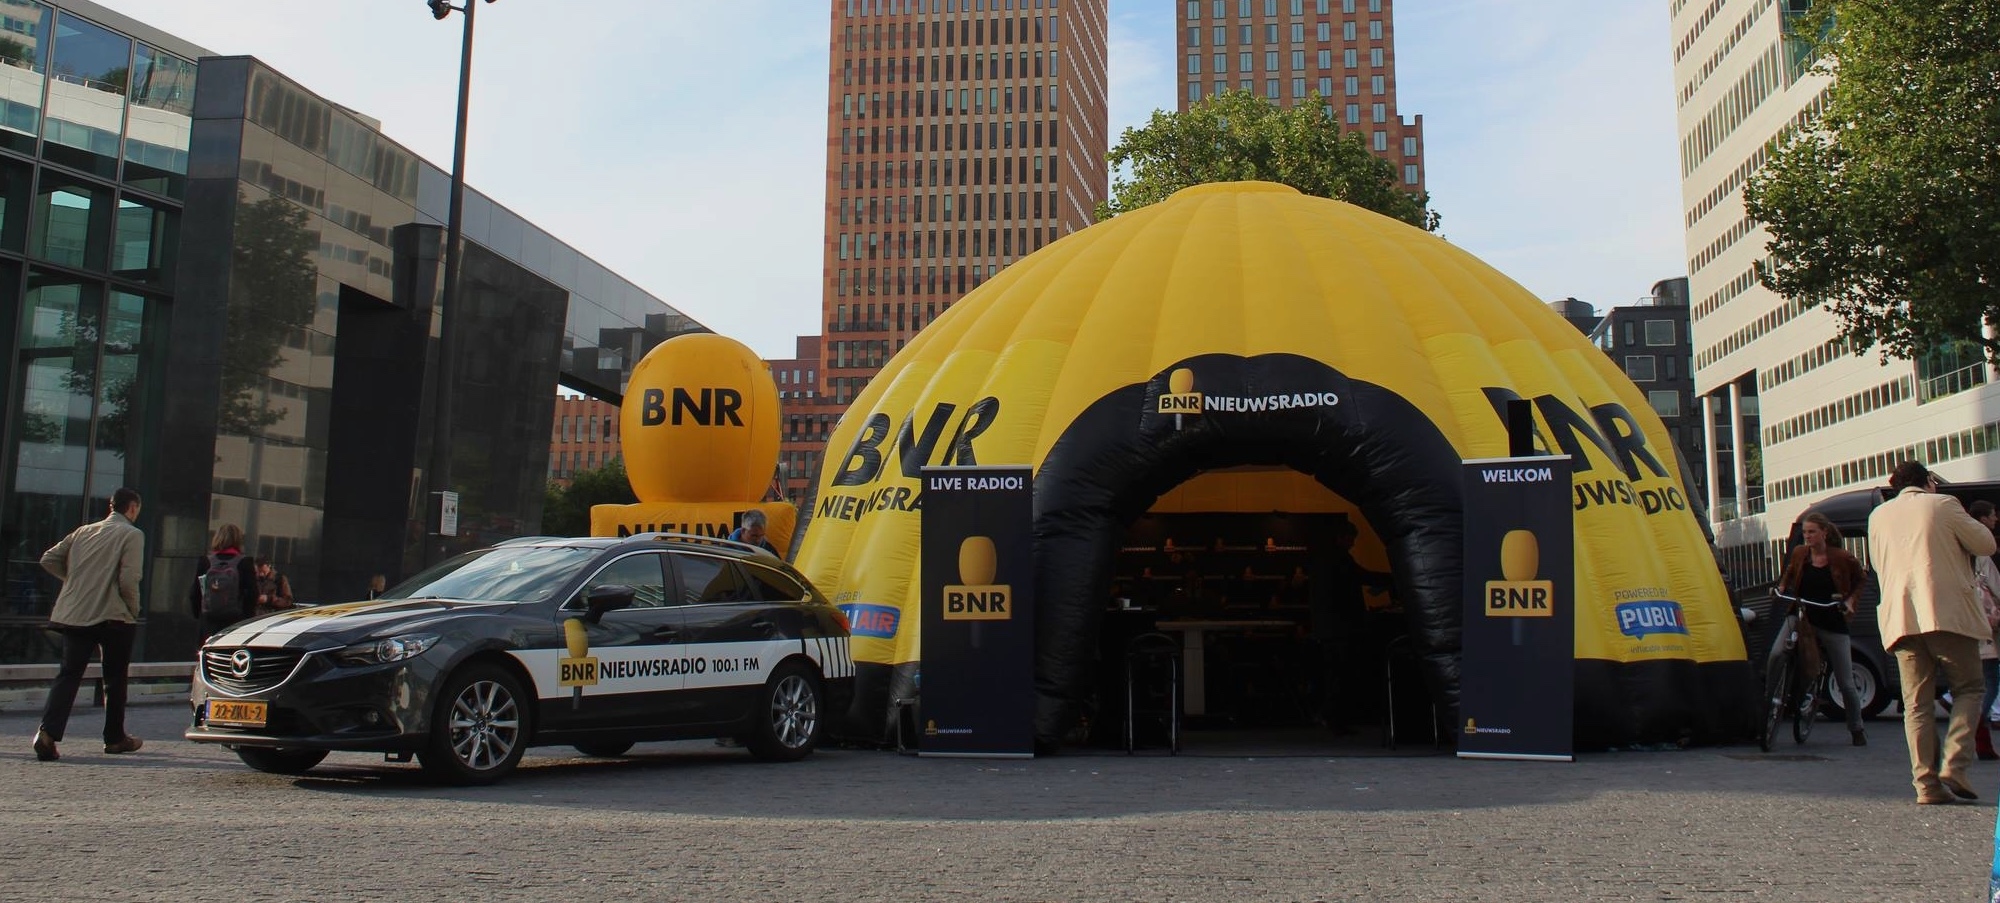 Opblaasbare tent dome tent custom inflatable tents - BNR - Publiair